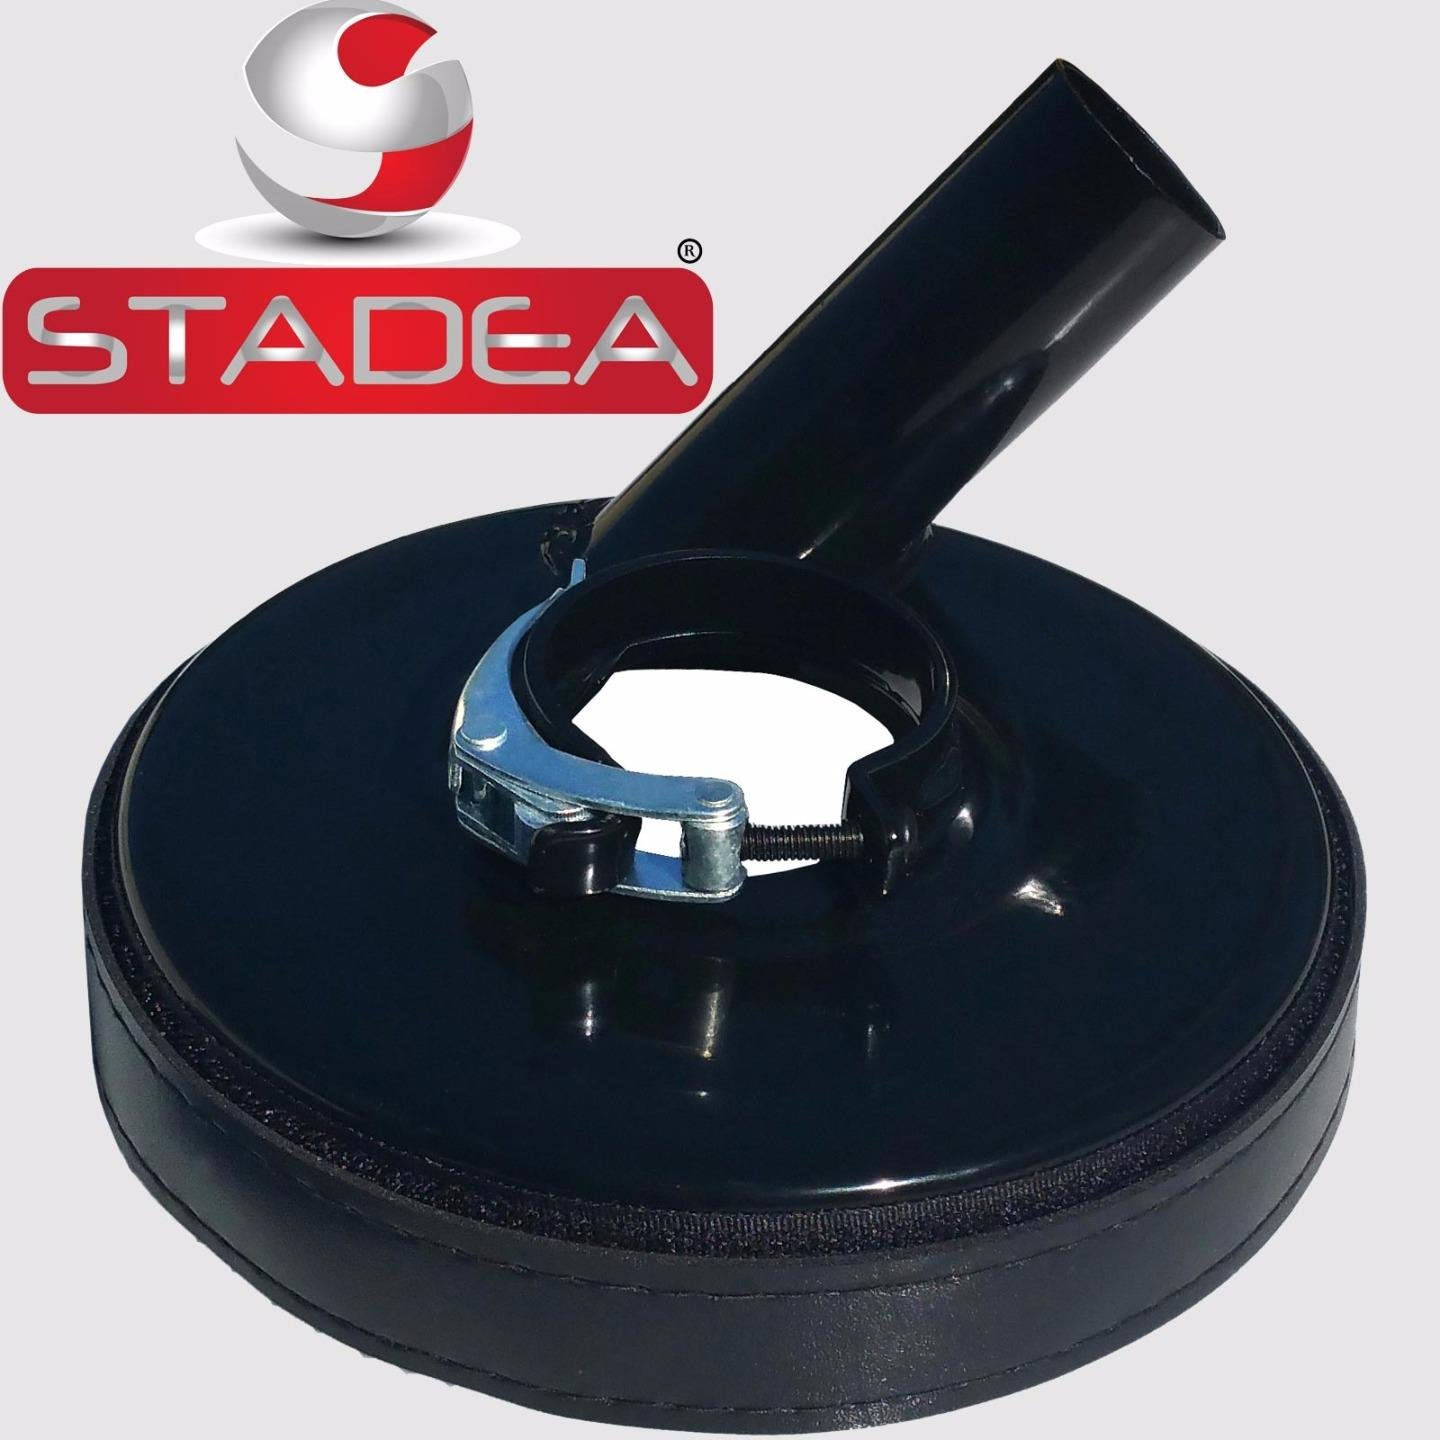 Stadea DSD101A Grinder Dust Shroud for Angle Grinders Hand Grinders by STADEA